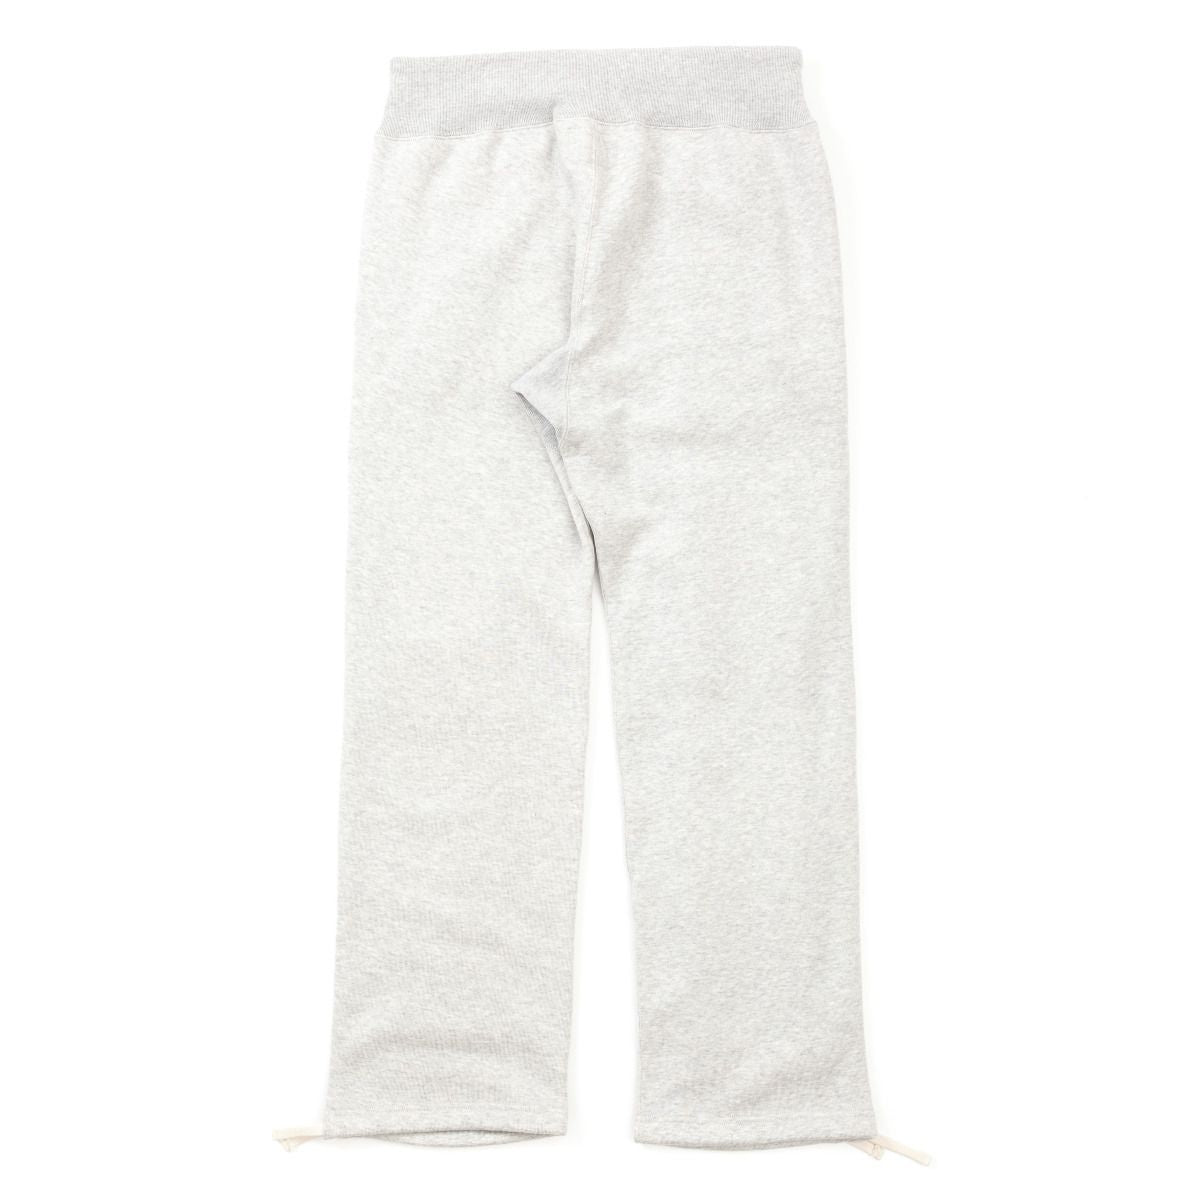 The Real McCoys U.S.N. Sweat Pants